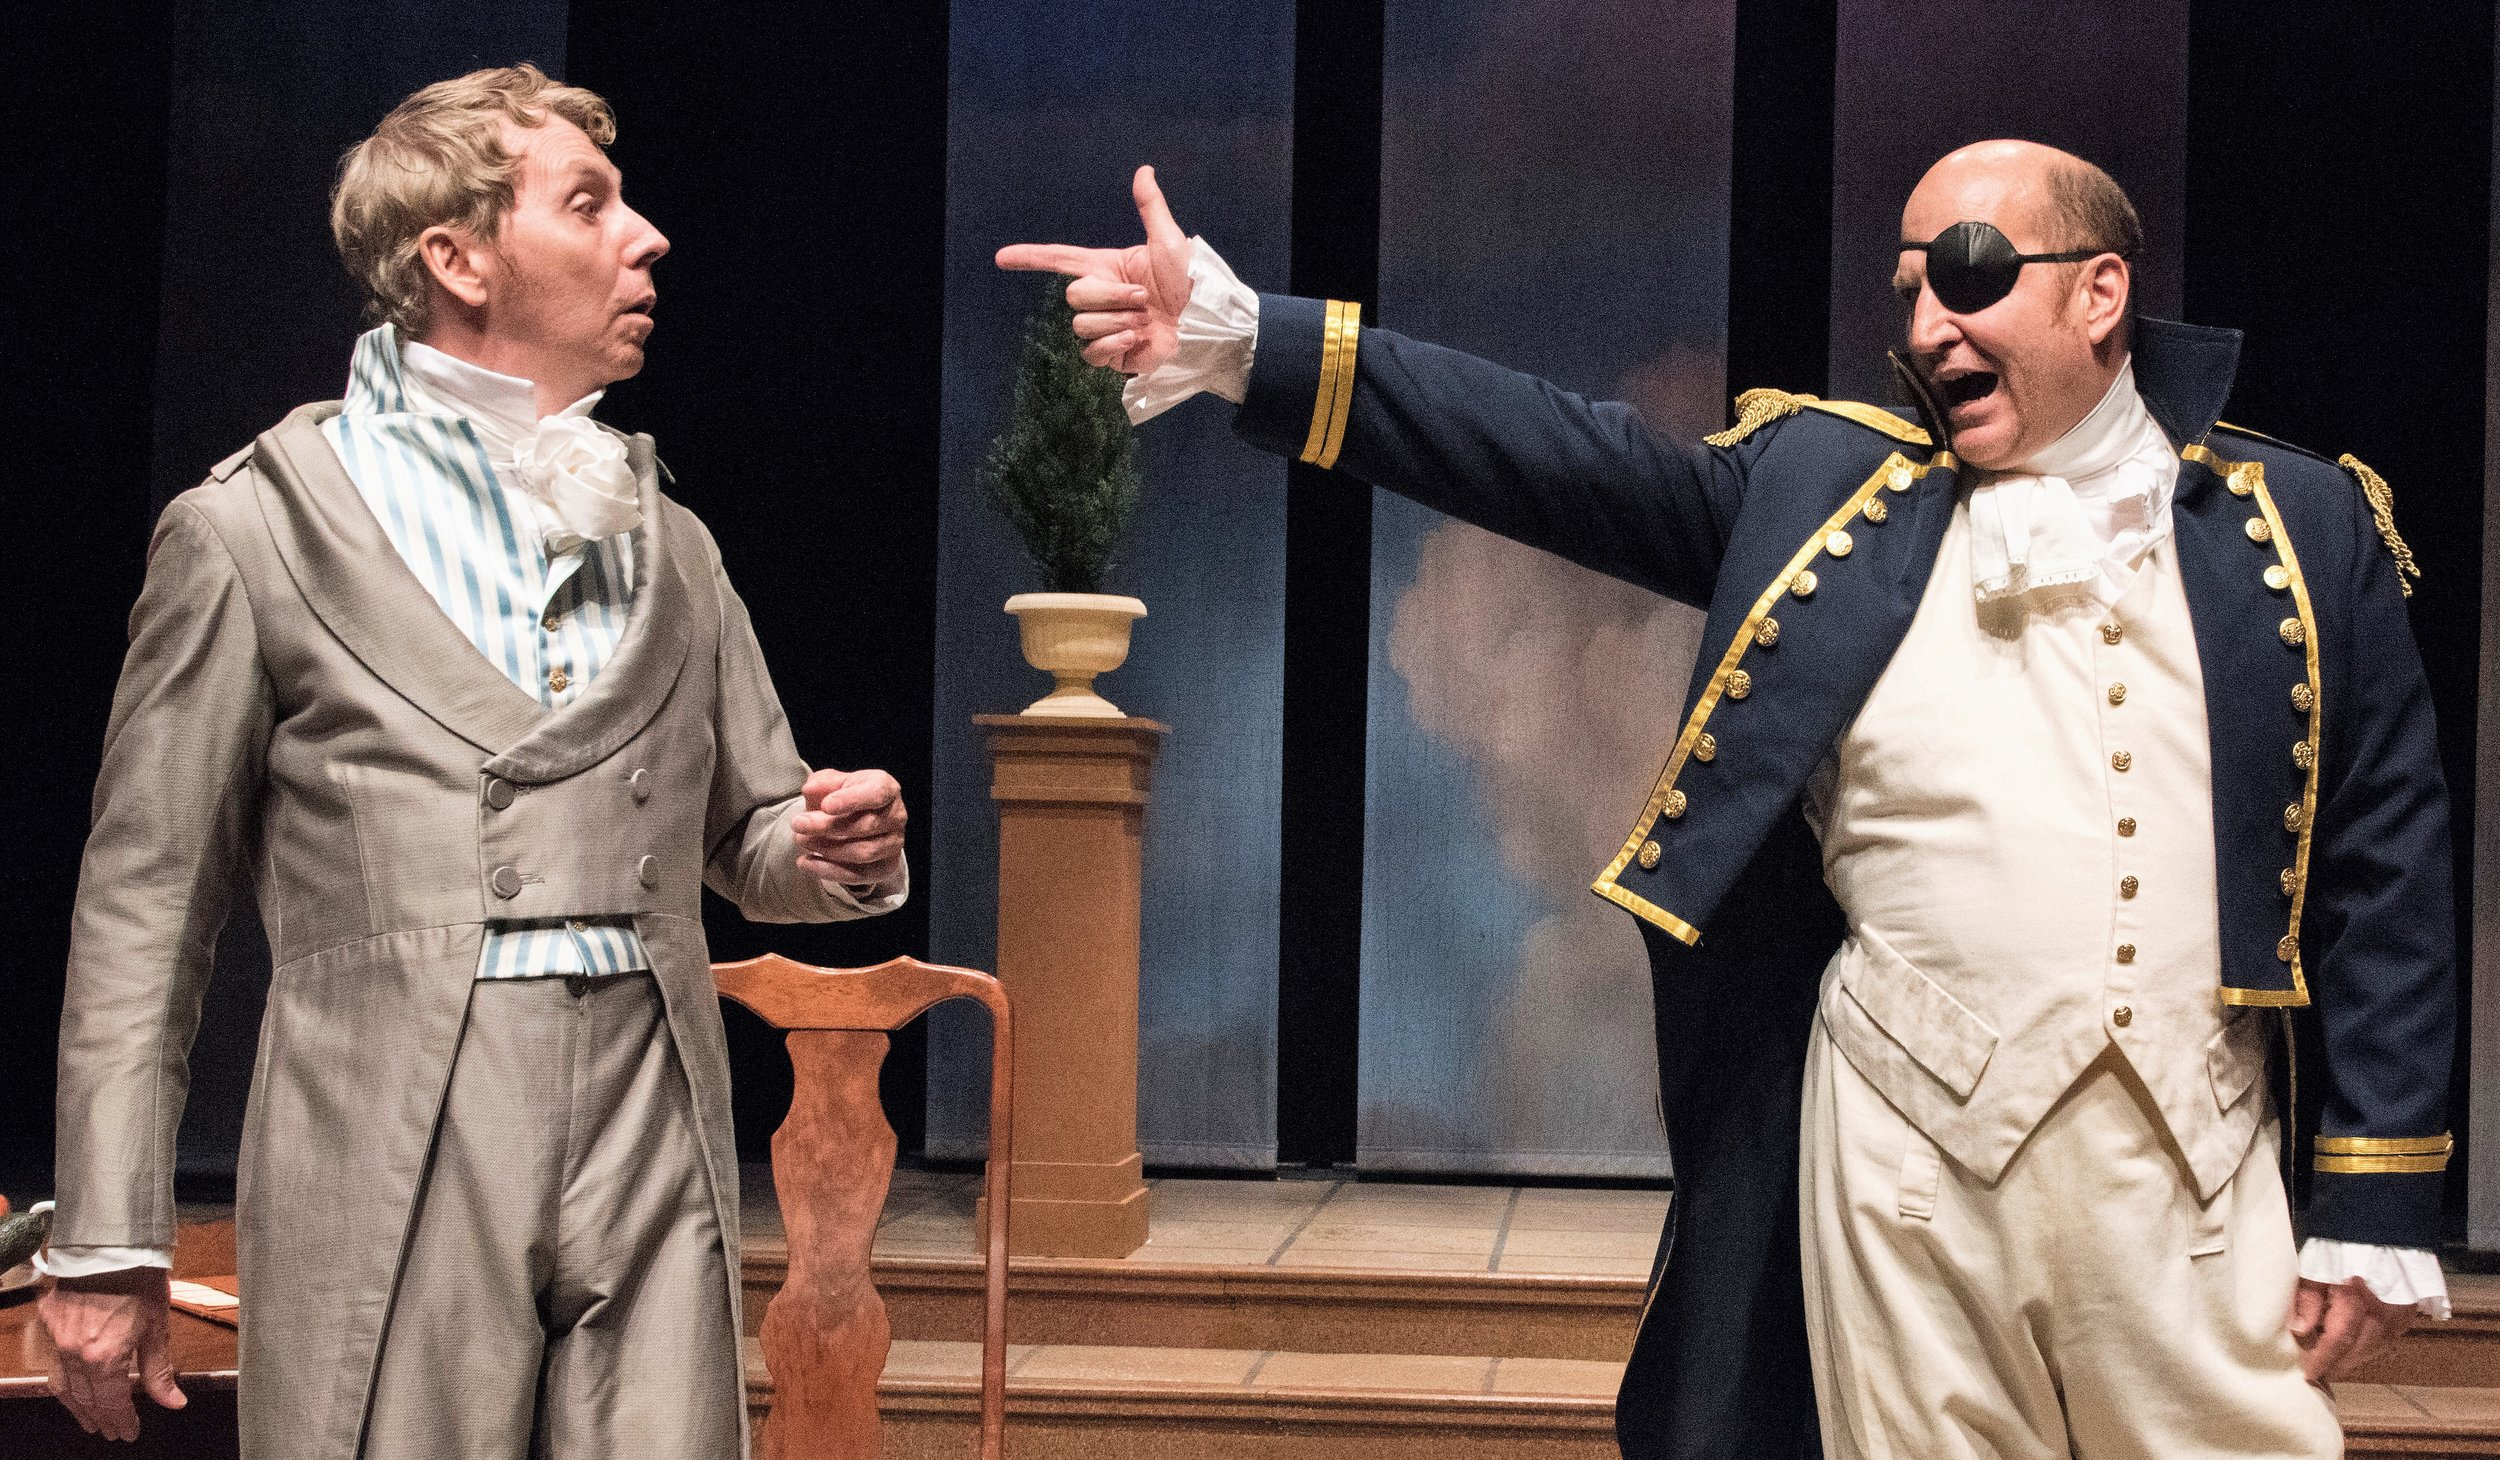 Jonathan Tindle (left) plays Ezra Chater, a cuckolded poet, and Steven Dykes is Captain Brice. Photographs by Stan Barouh.